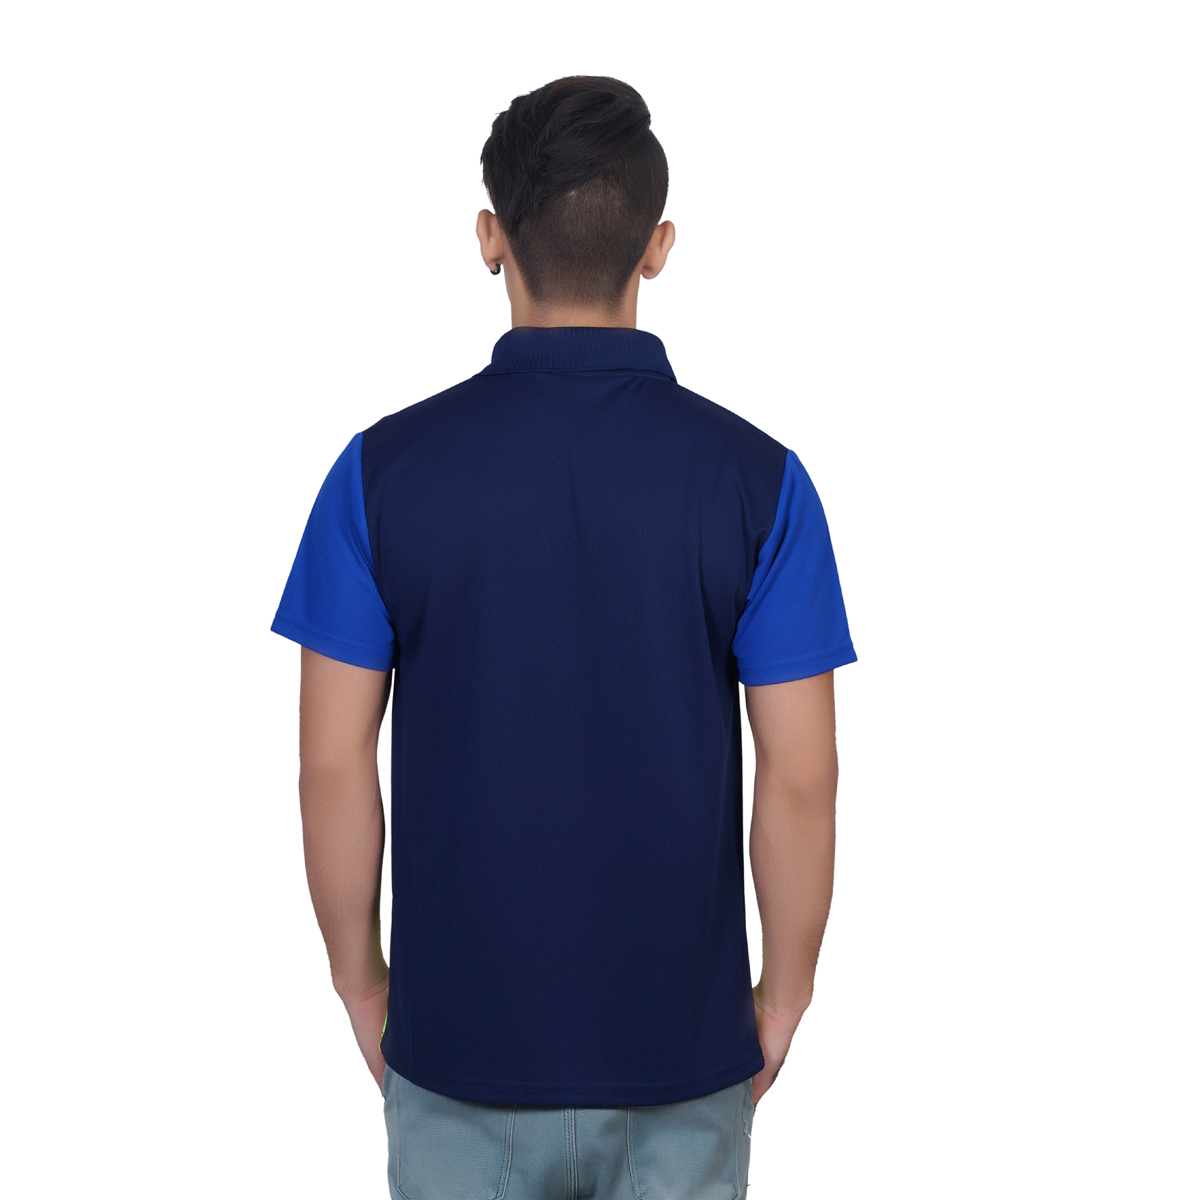 Soccer T Shirts Manufacturers, Wholesale Suppliers